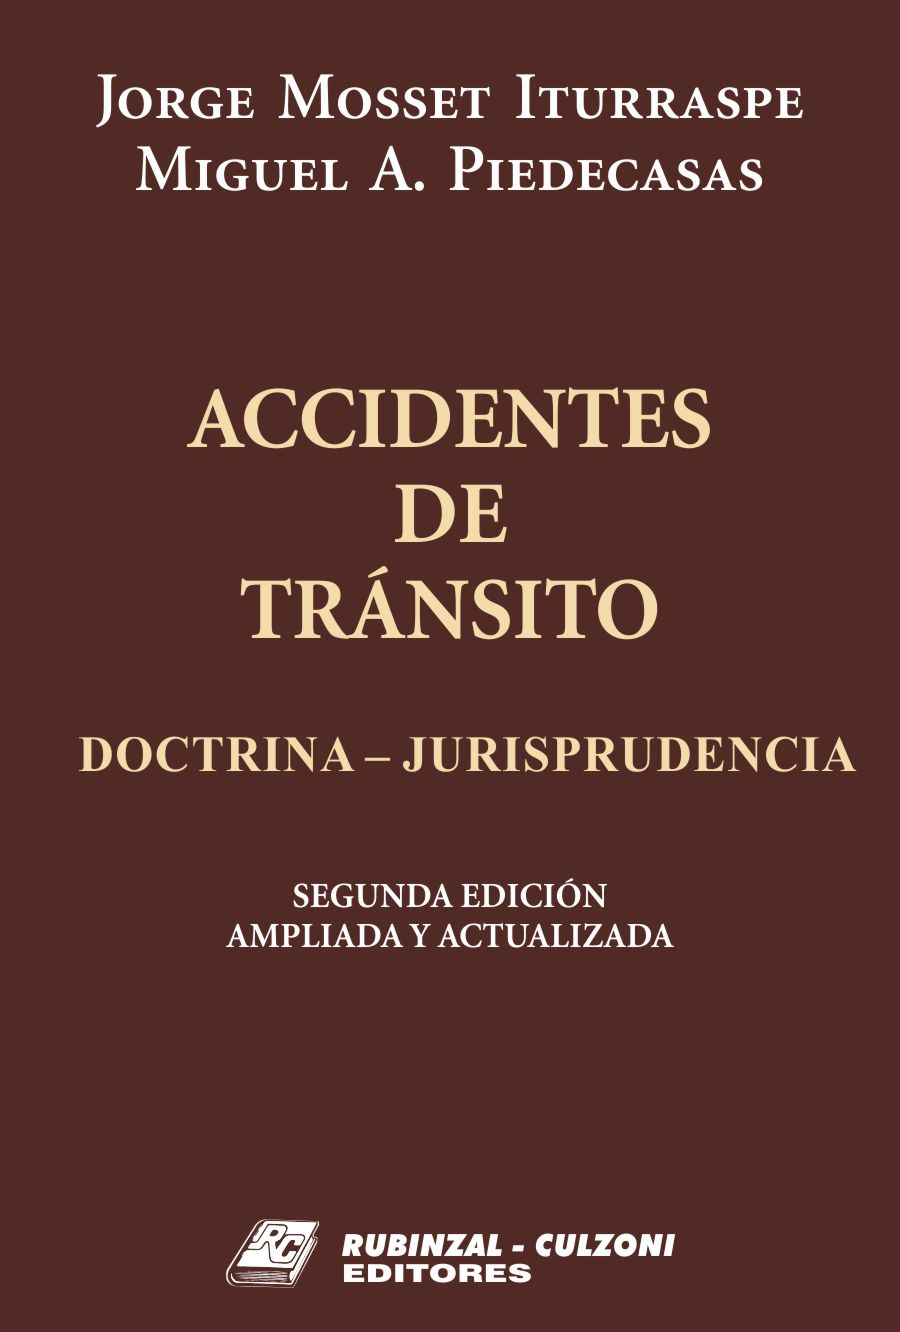 Accidentes de tránsito (Doctrina - Jurisprudencia).